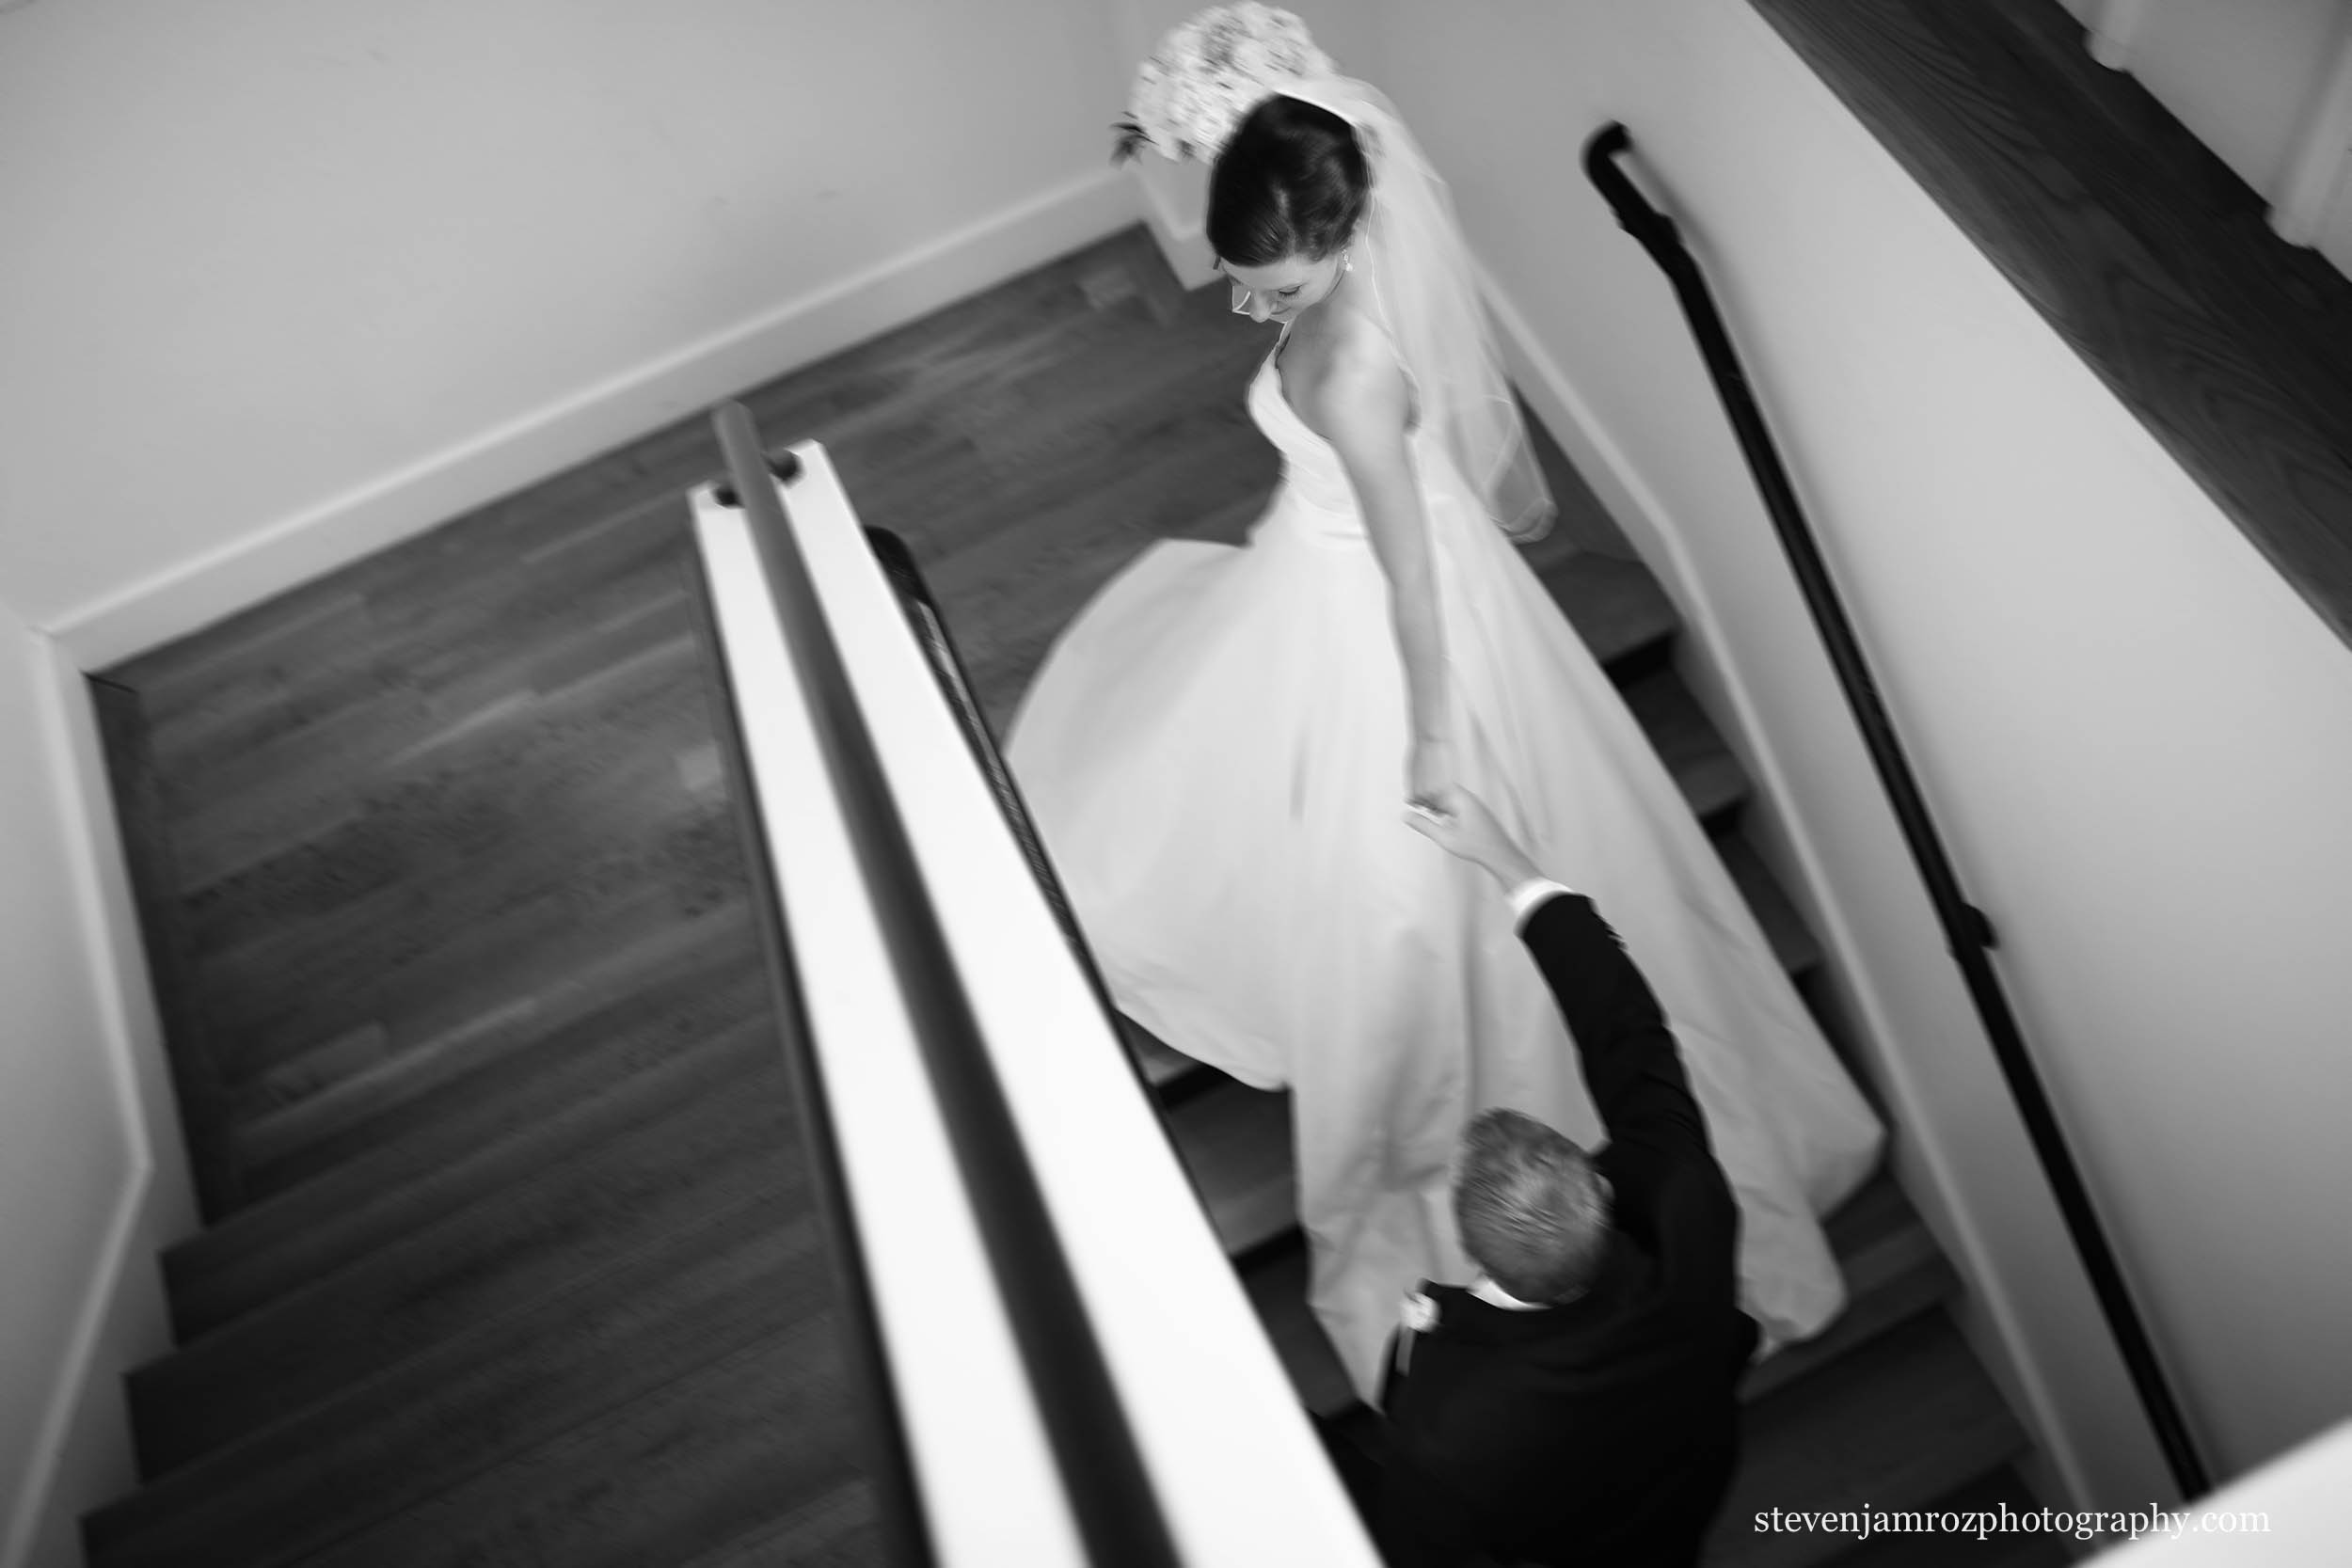 ceremony-time-wedding-all-saints-chapel-steven-jamroz-photography-0181.jpg